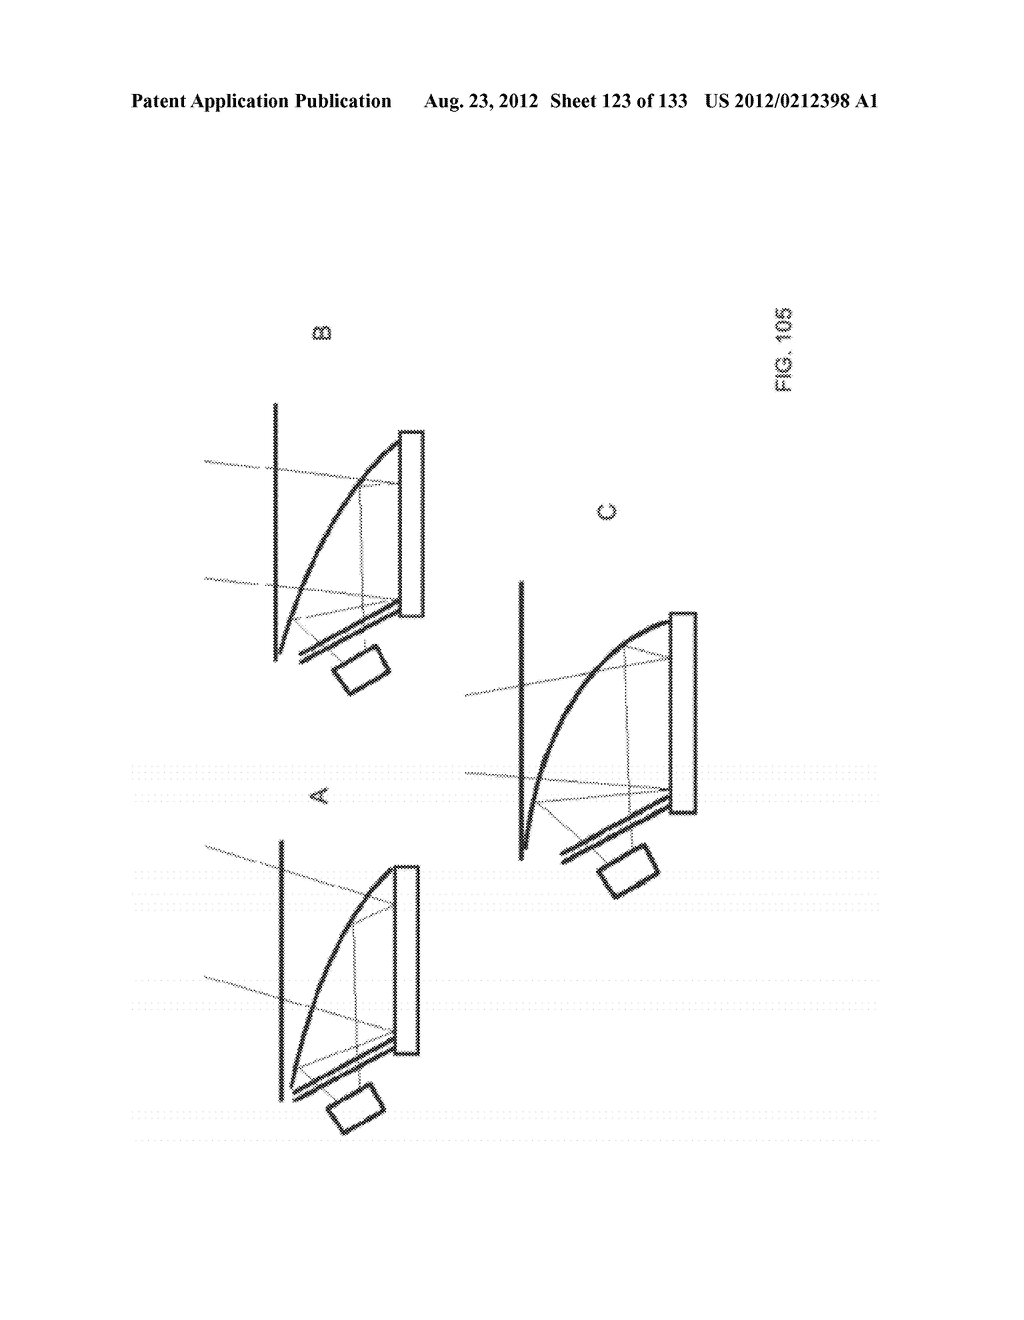 SEE-THROUGH NEAR-EYE DISPLAY GLASSES INCLUDING A PARTIALLY REFLECTIVE,     PARTIALLY TRANSMITTING OPTICAL ELEMENT - diagram, schematic, and image 124